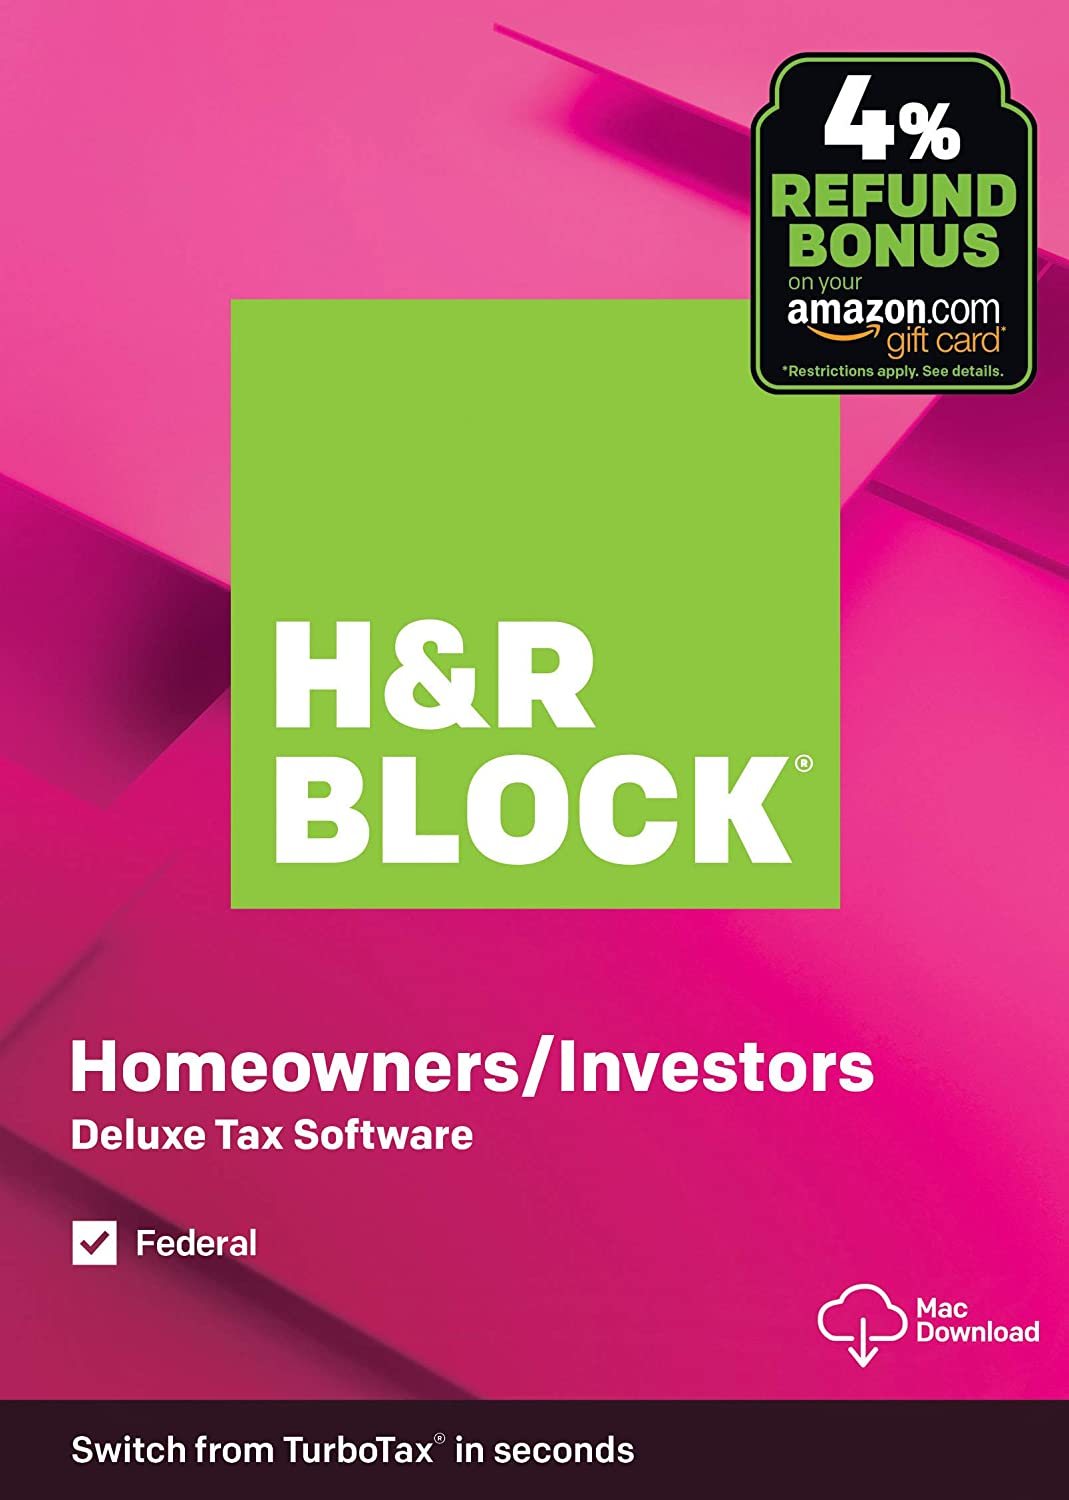 H&R Block Tax Software Deluxe 2019 [Federal Only] with 4% Refund Bonus Offer [Amazon Exclusive] [Mac Download]